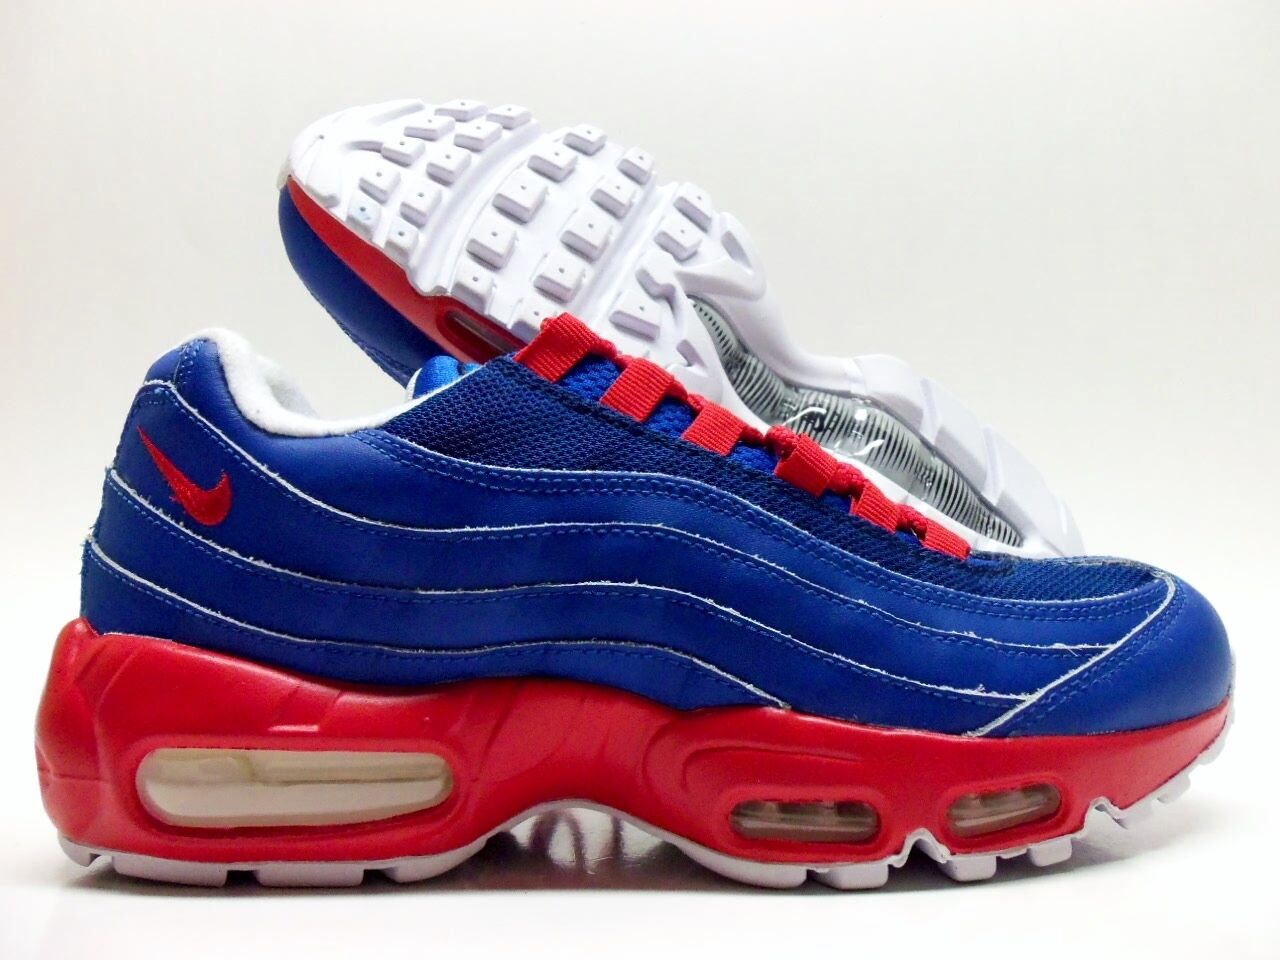 NIKE AIR MAX 95 ID UNIVERSITY blueE SPORT RED SIZE WOMEN'S 8.5 [818593-992]